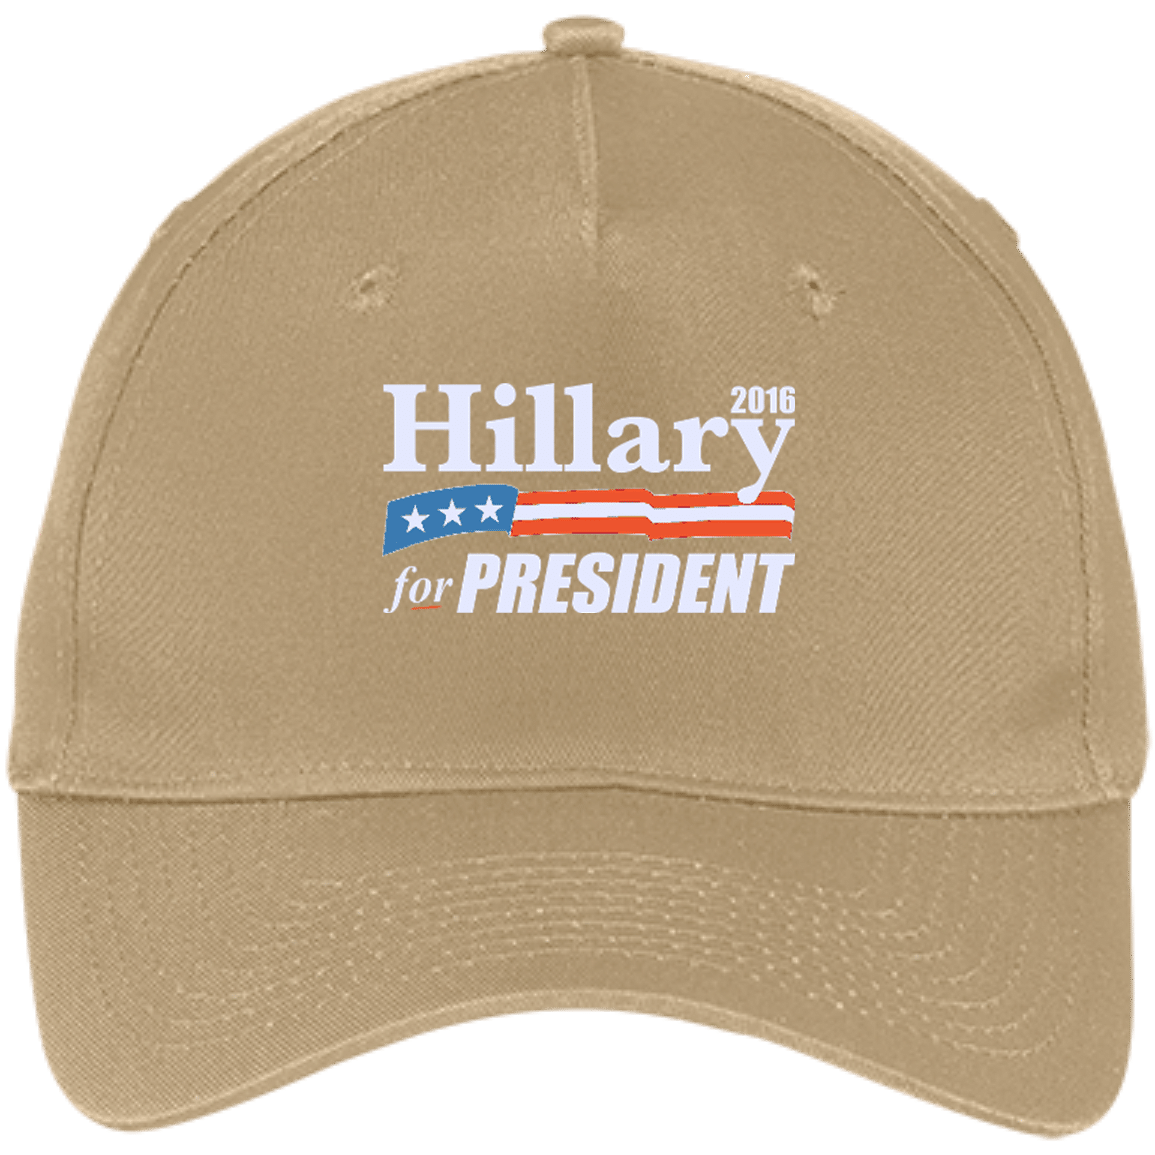 Hillary transparent hat. For president caps and